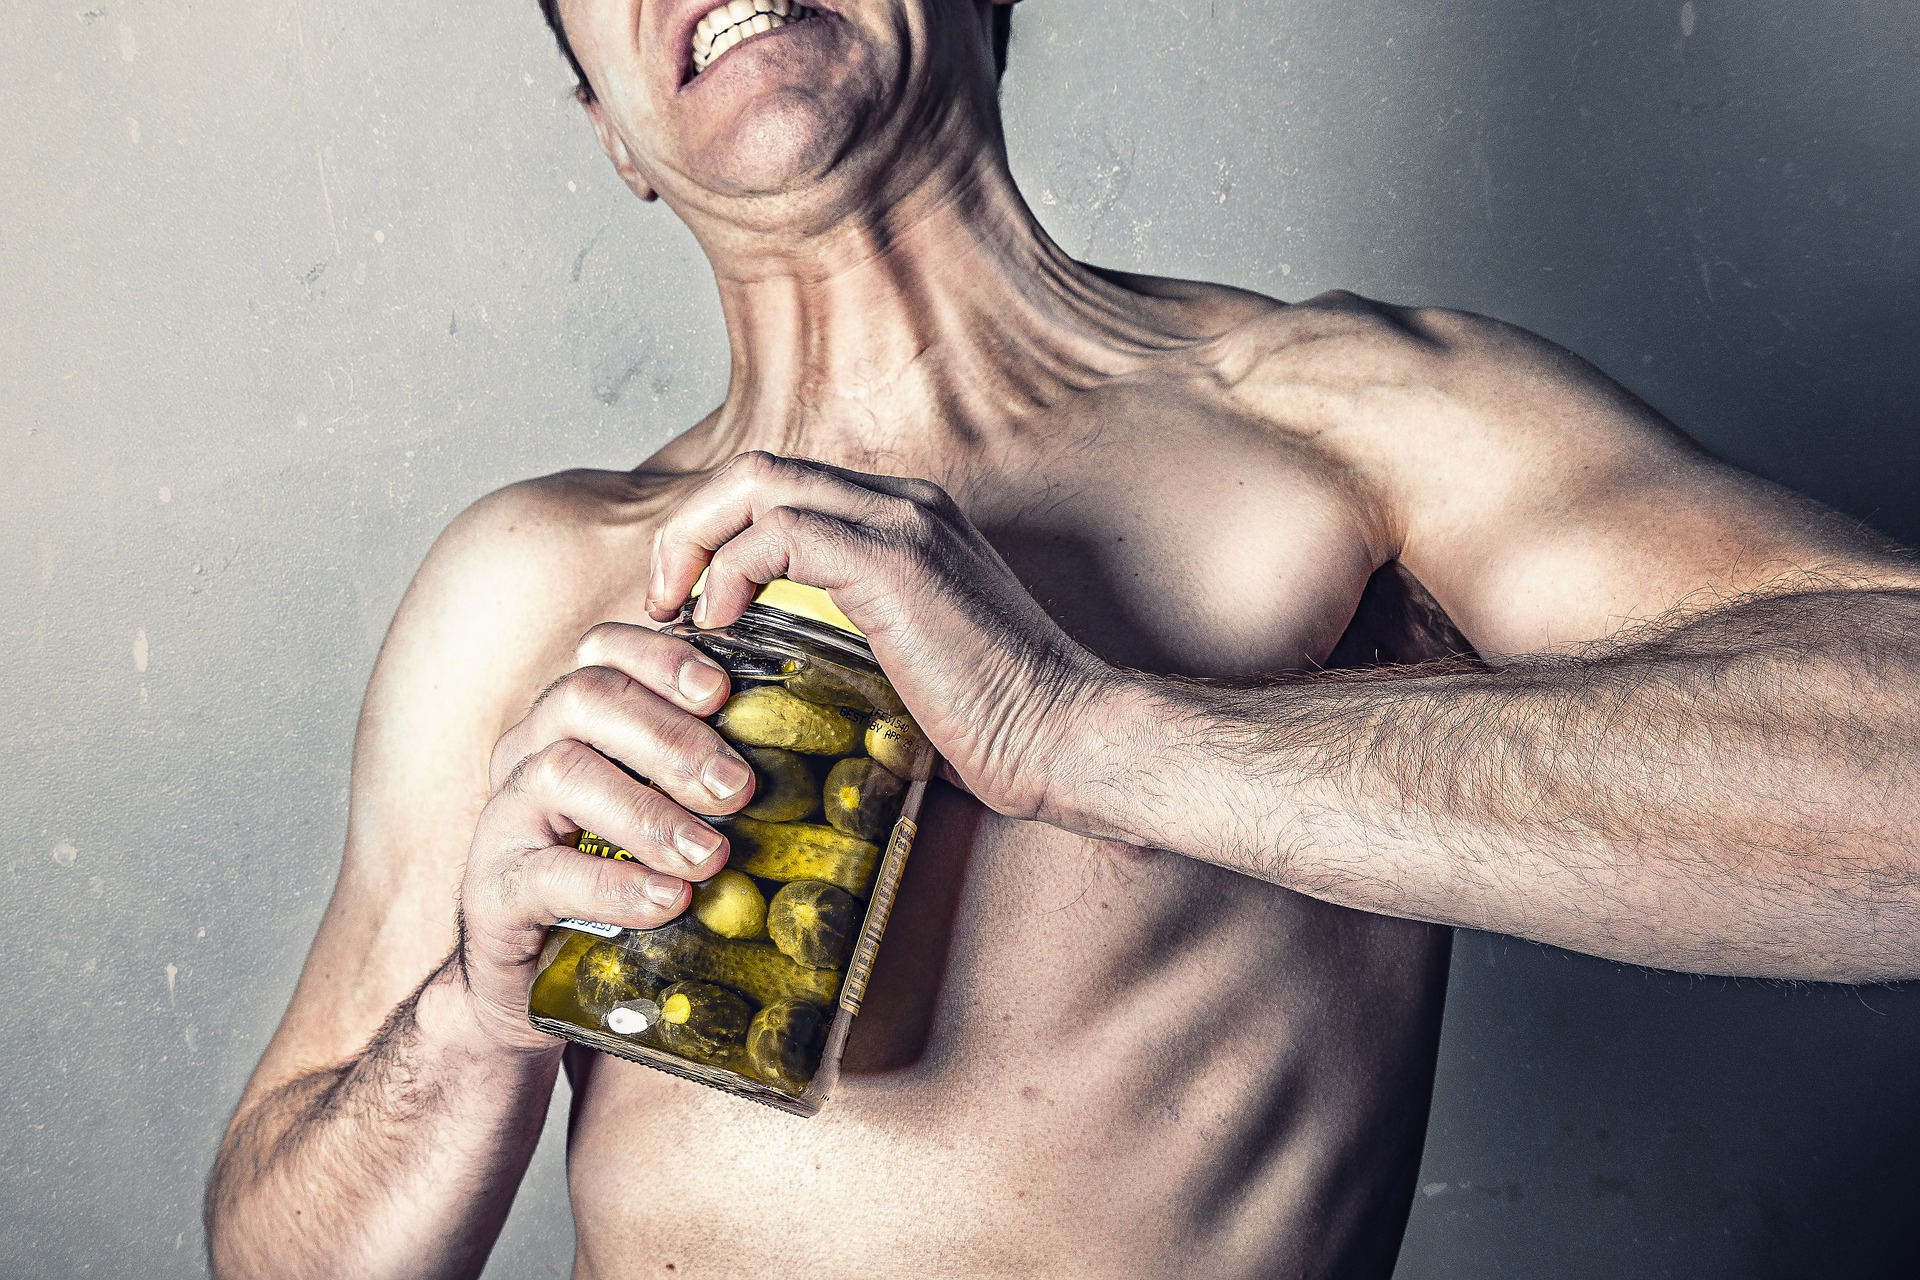 Do you ever feel like this guy after a workout trying to open something? You don't have to.